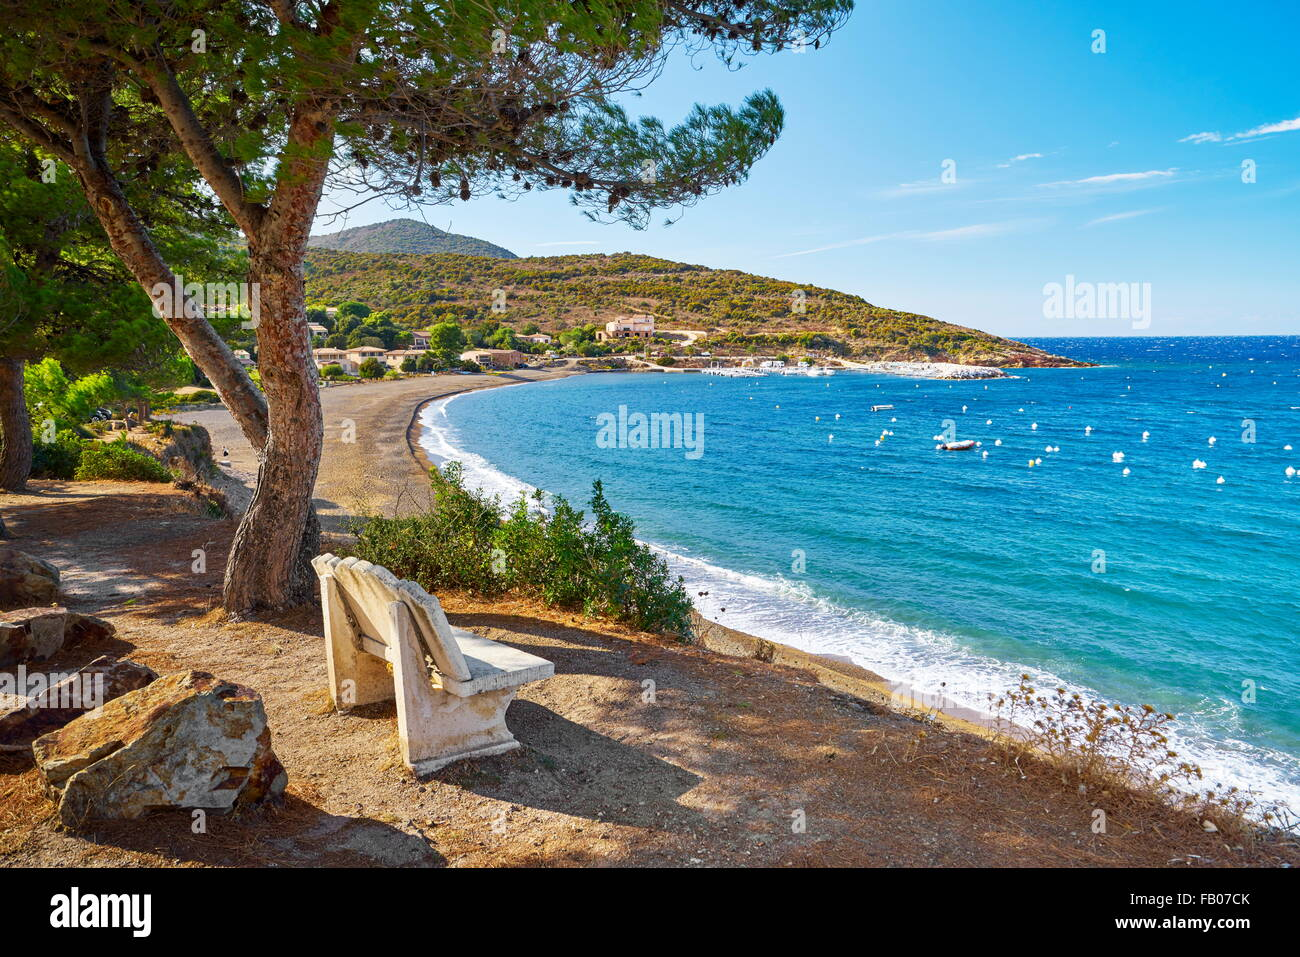 Golfe de Galeria, view to small fishing village Galeria, Corsica Island, France - Stock Image